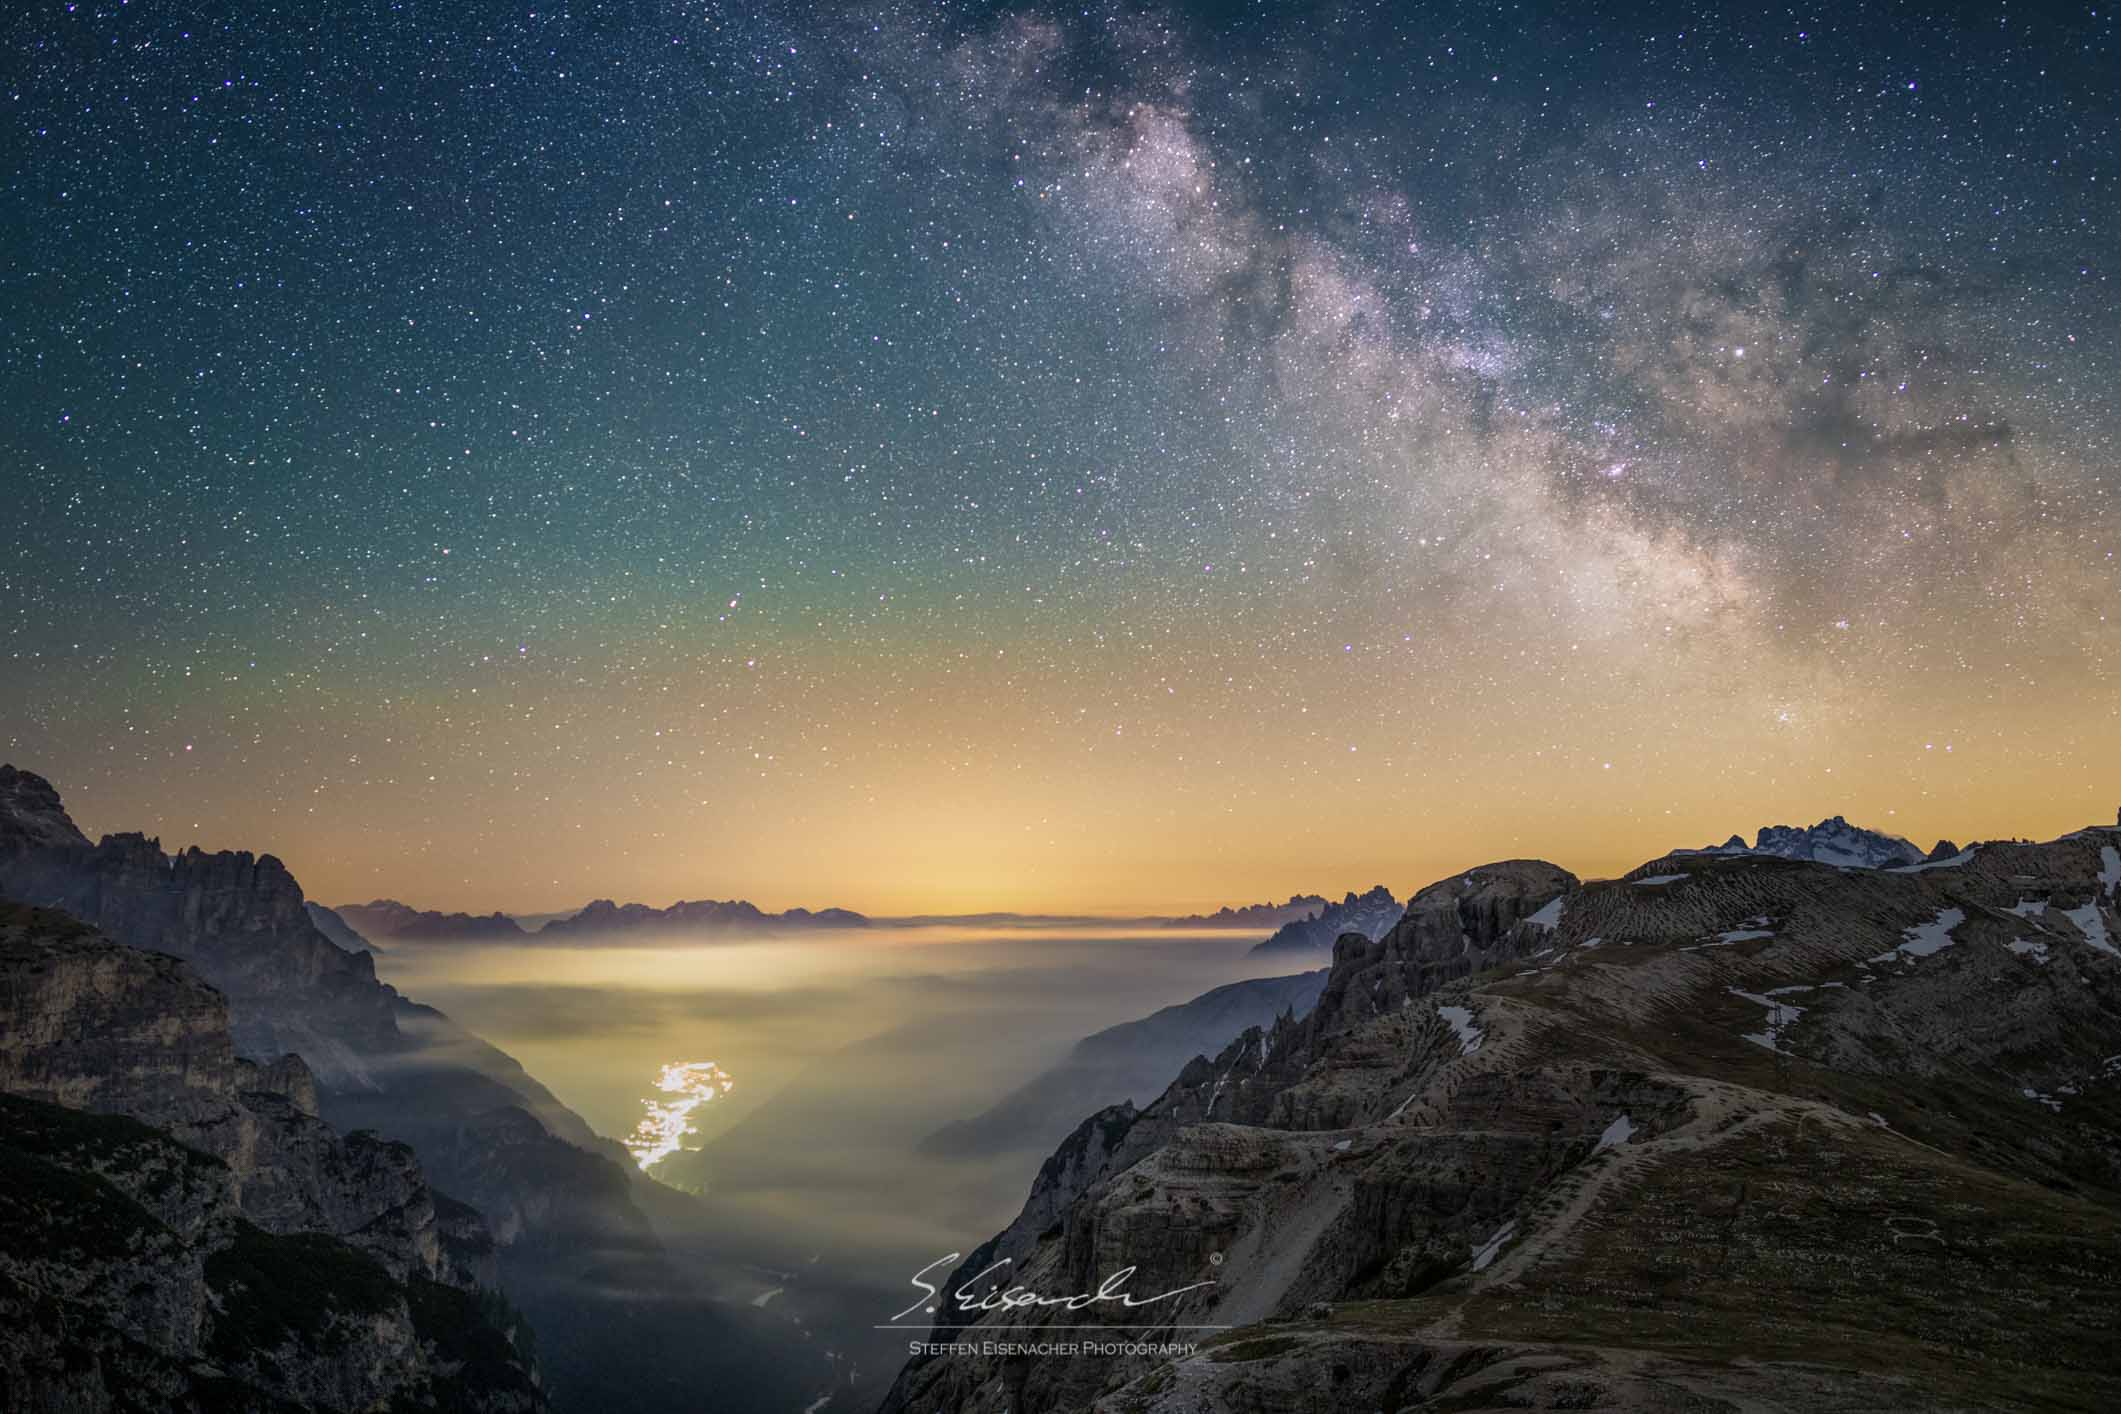 Milkyway over the Dolomites.15 sec f/1.4 ISO5000